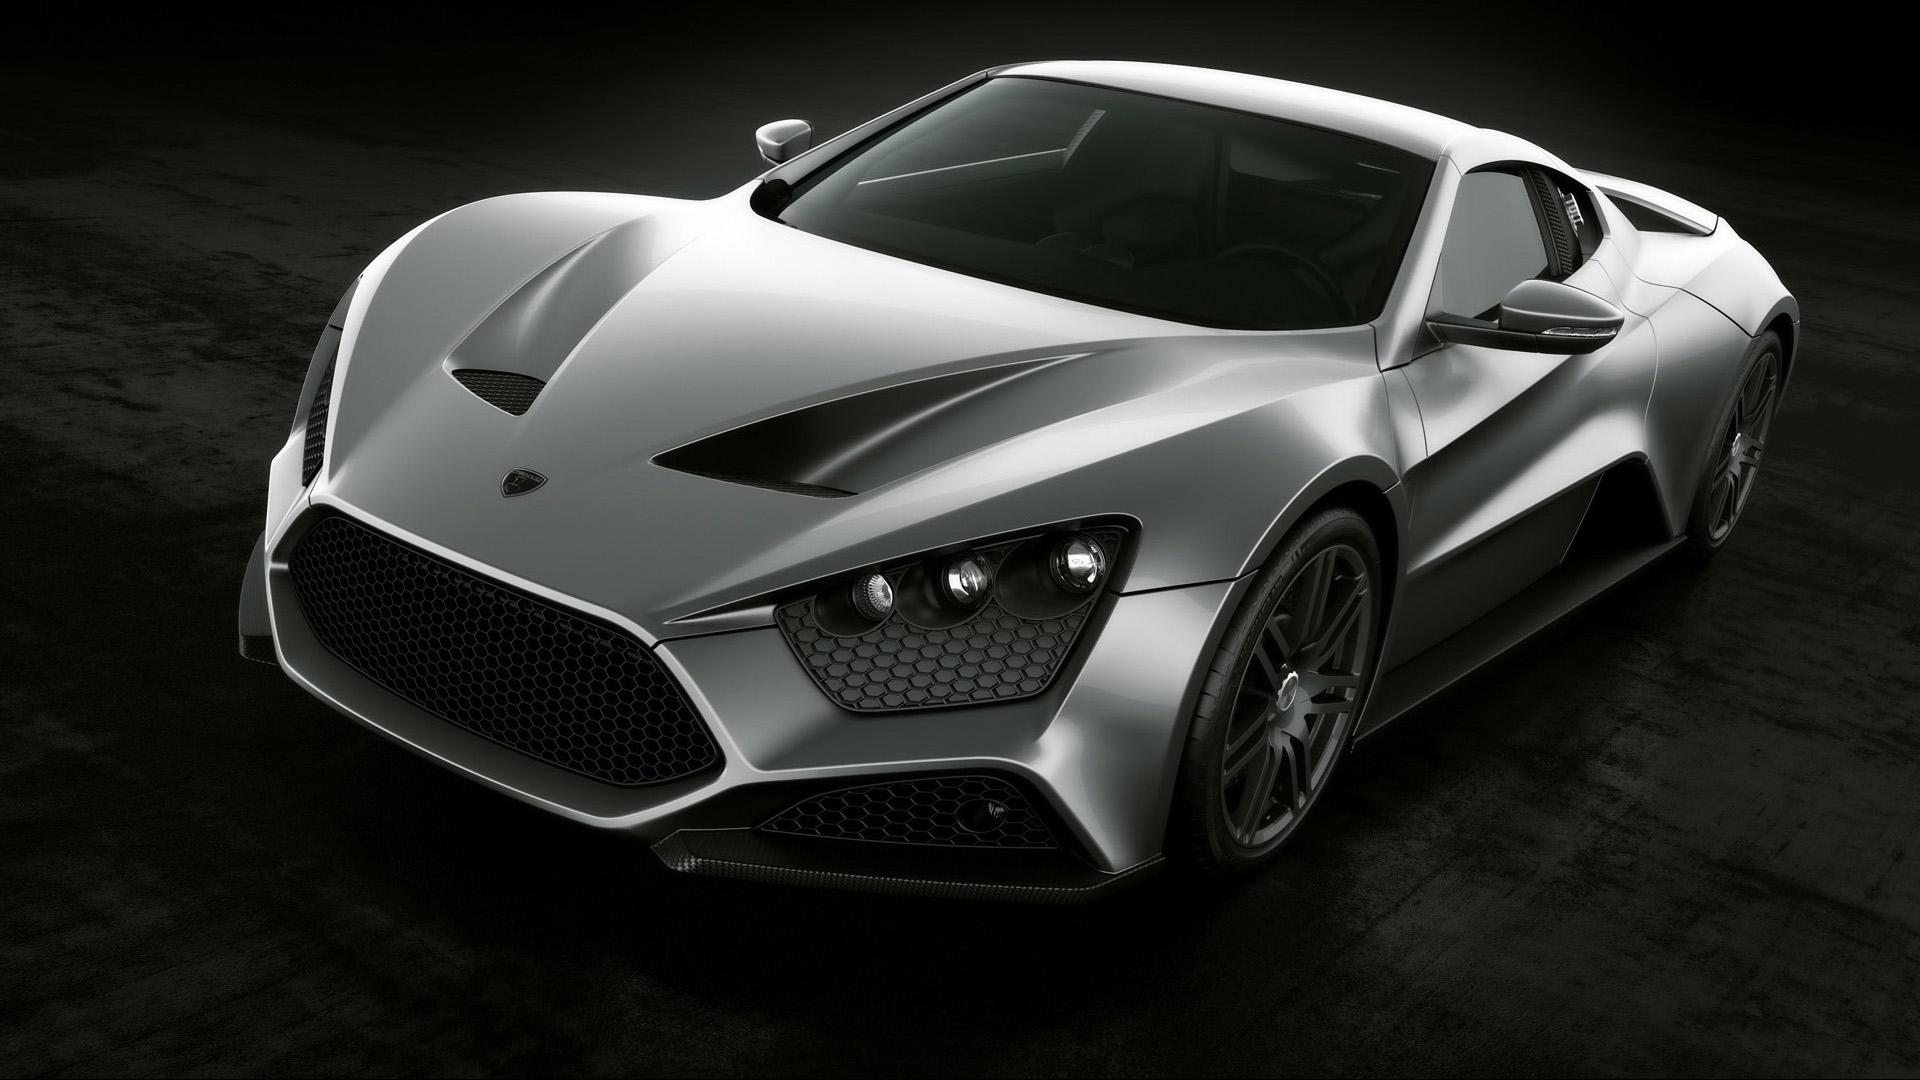 Zenvo-St1-Frontcar-Sports-Cars-Super-Sports-Cars